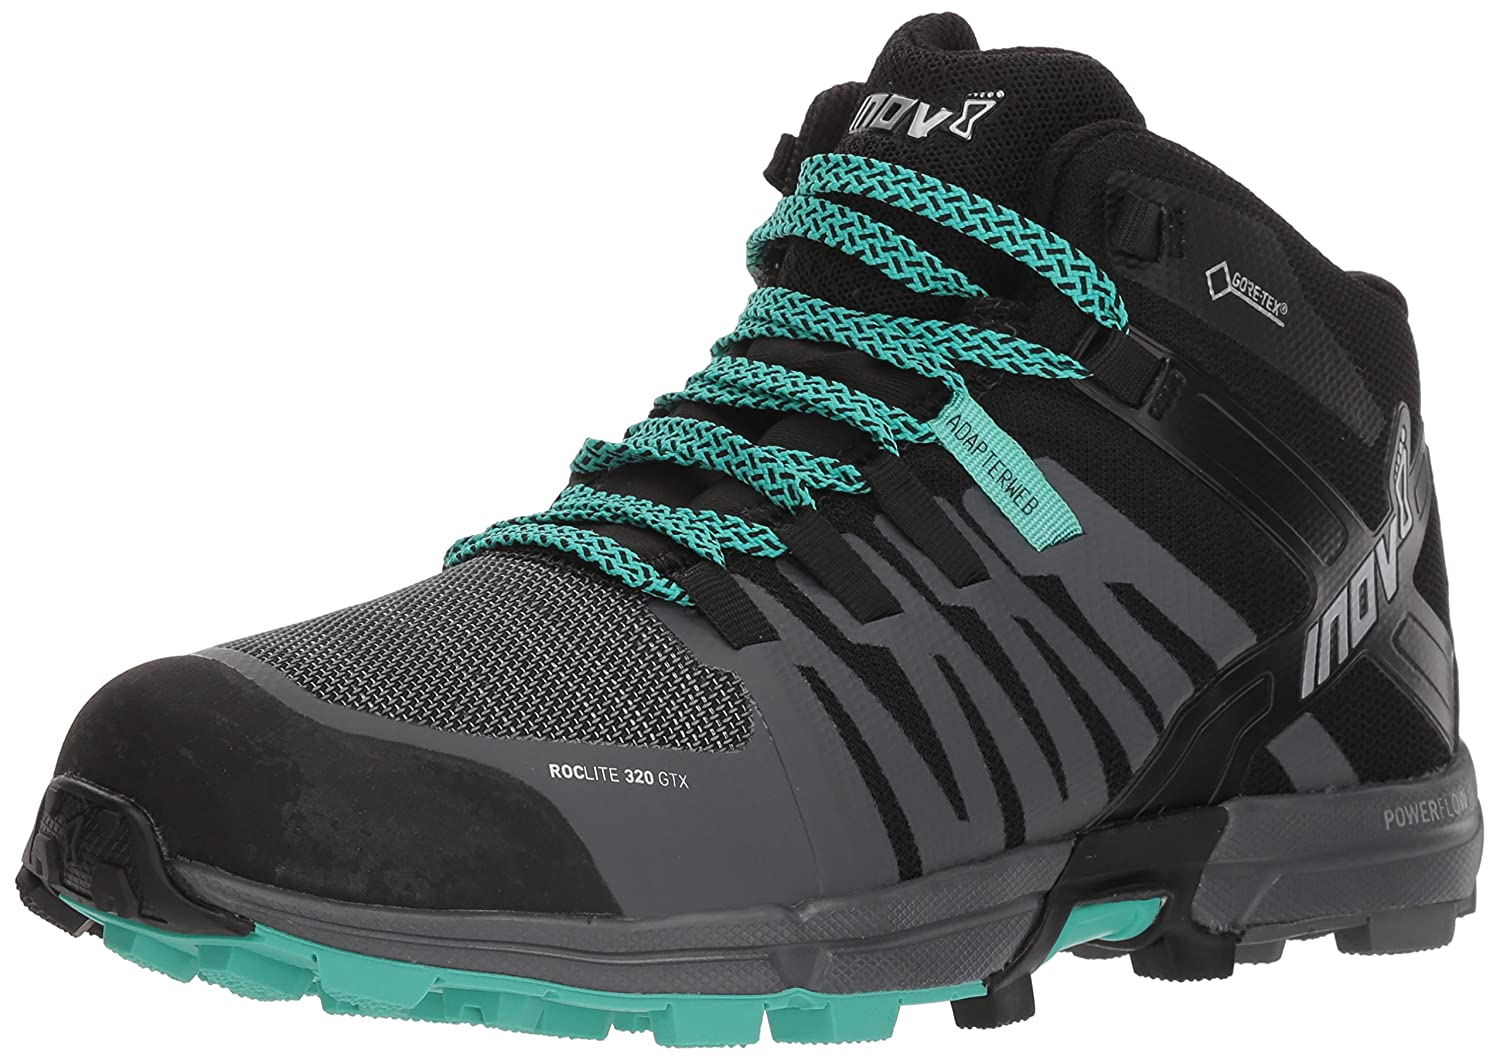 Inov-8 Womens Roclite 320 GTX B077P5KTG3 4 M UK|Black/Grey/Teal 1